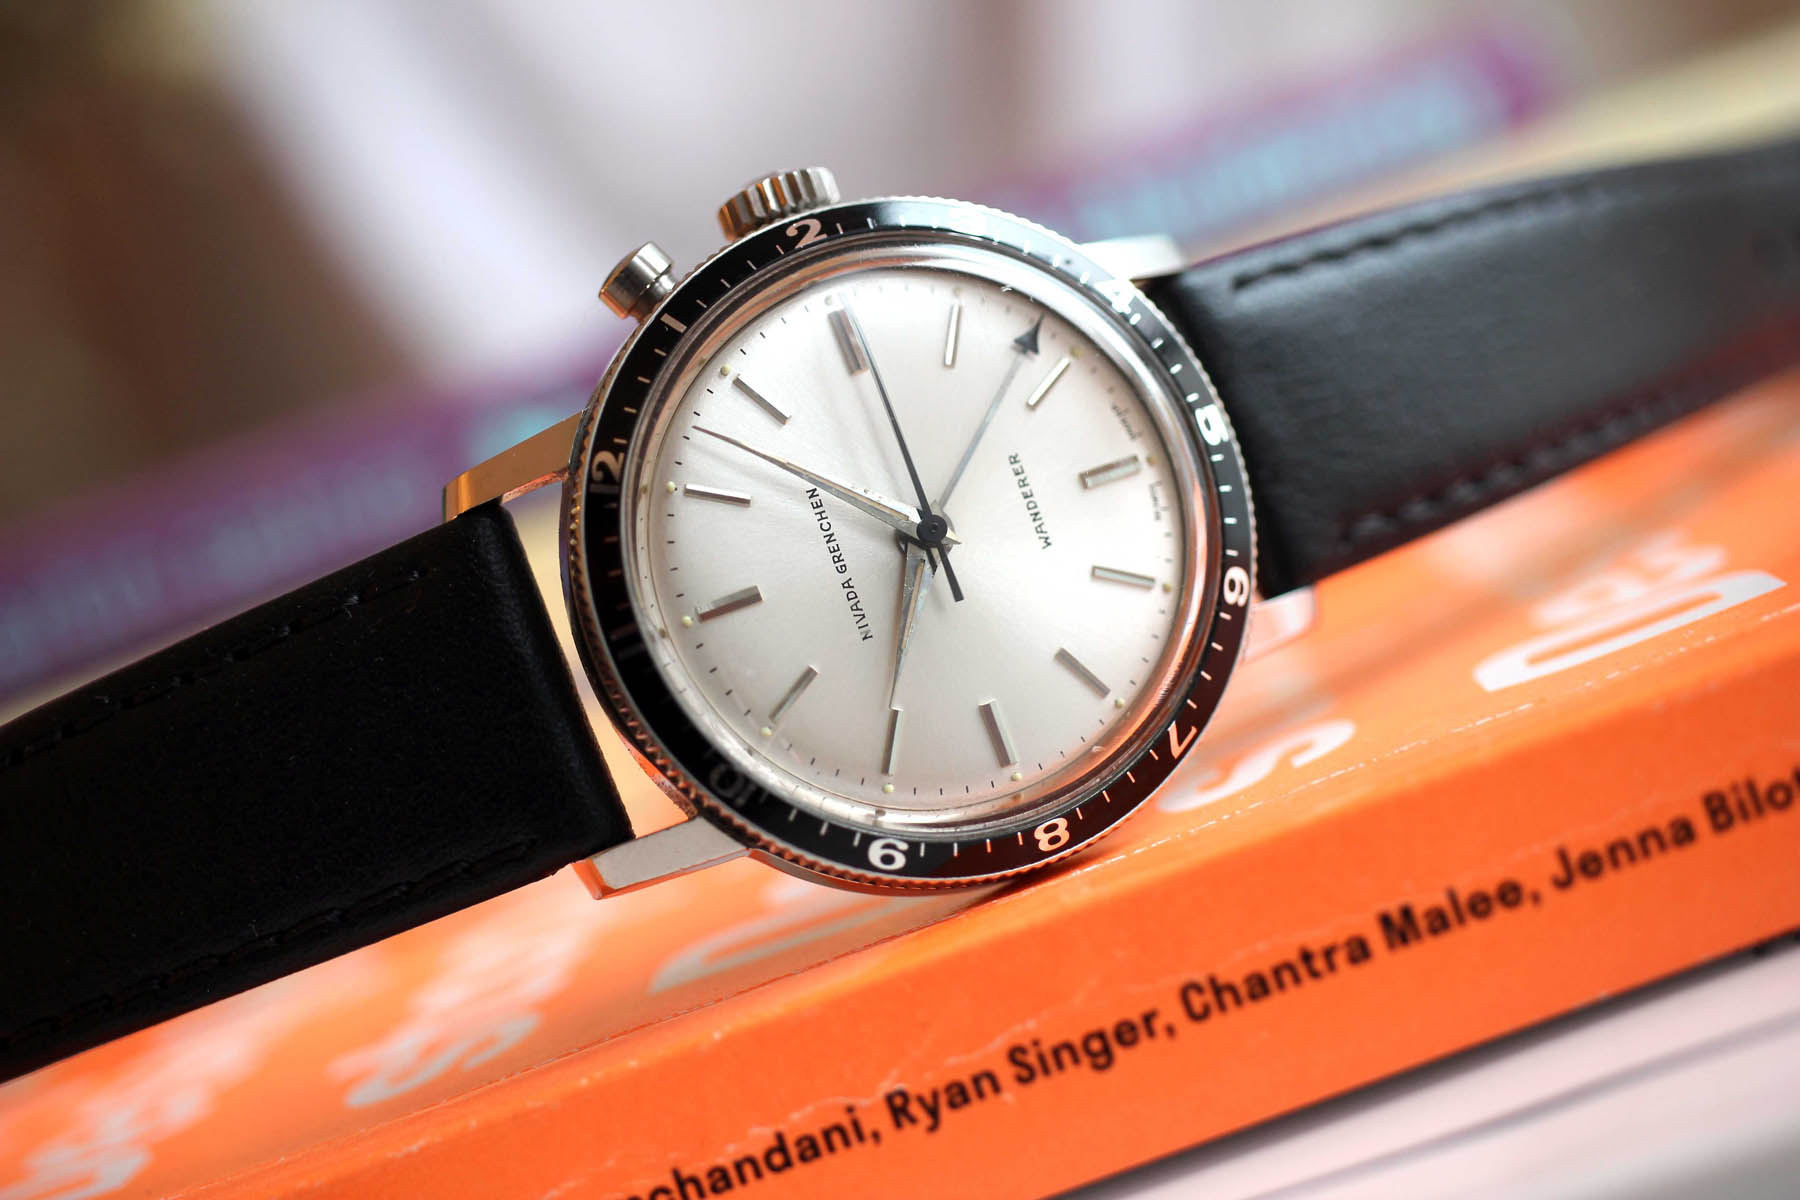 #TBT Why Isn't the Nivada Wanderer An Easy Watch To Find?